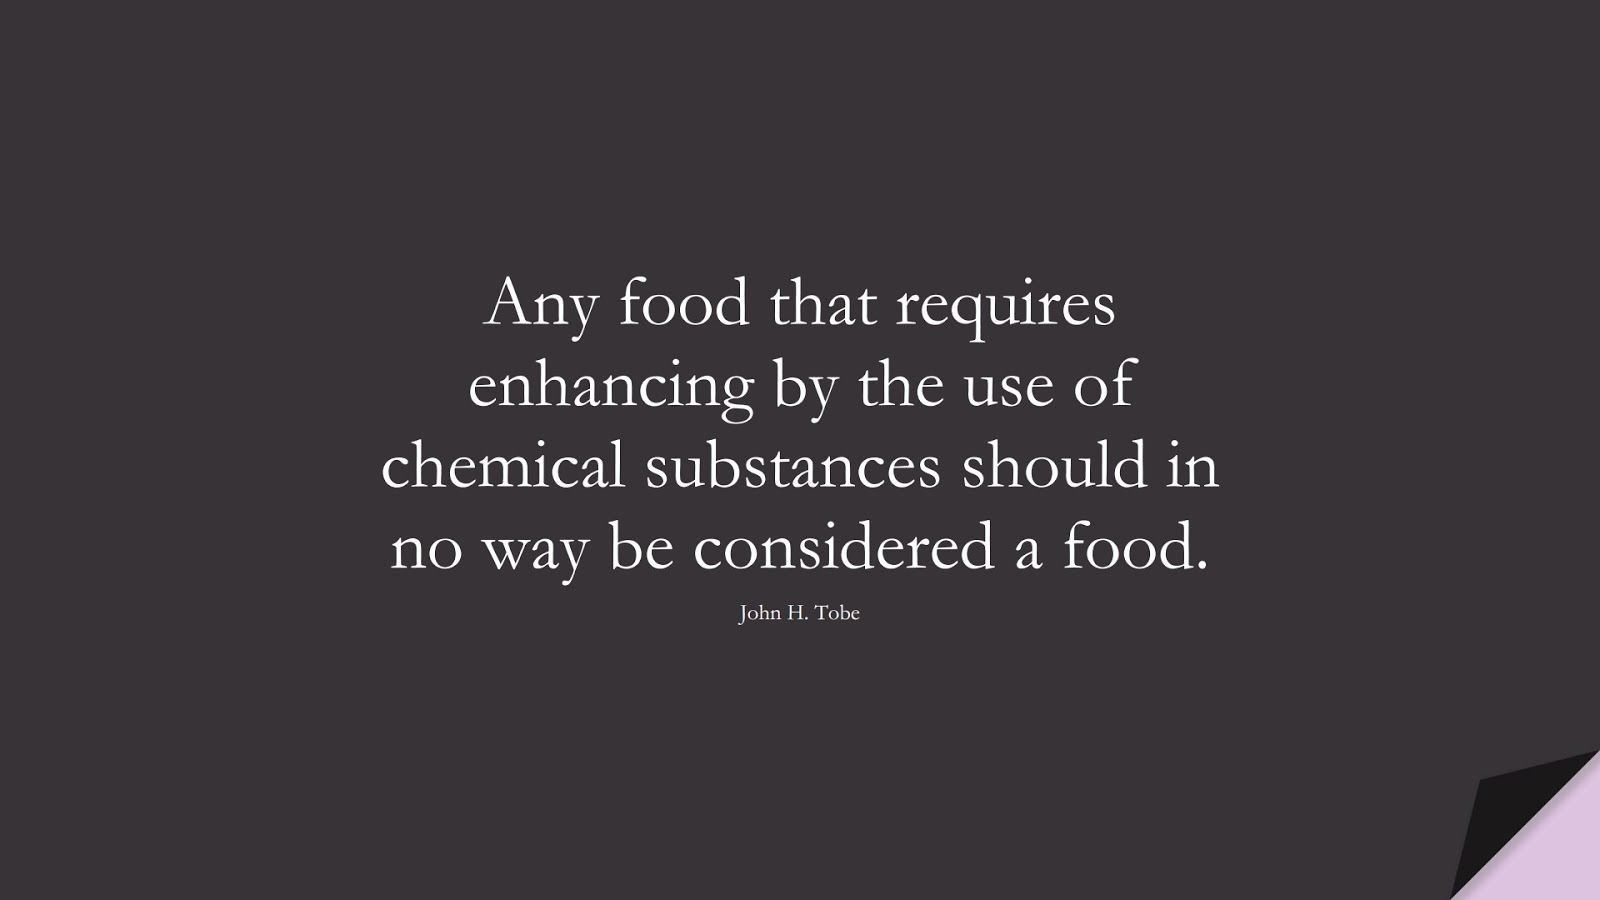 Any food that requires enhancing by the use of chemical substances should in no way be considered a food. (John H. Tobe);  #HealthQuotes